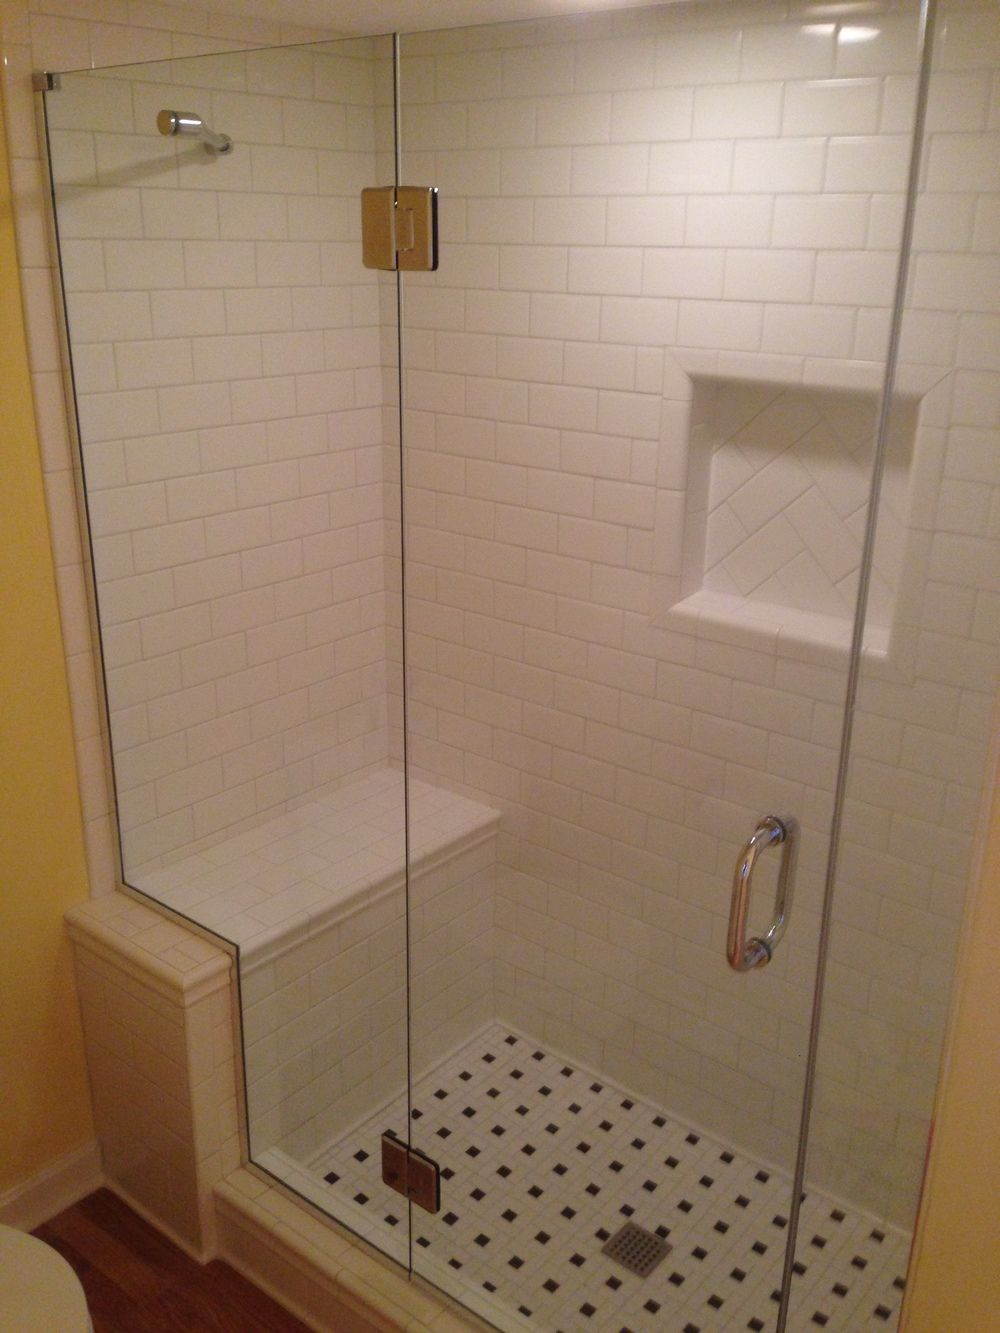 Converting Tub To Walk In Shower Bathroom Pinterest